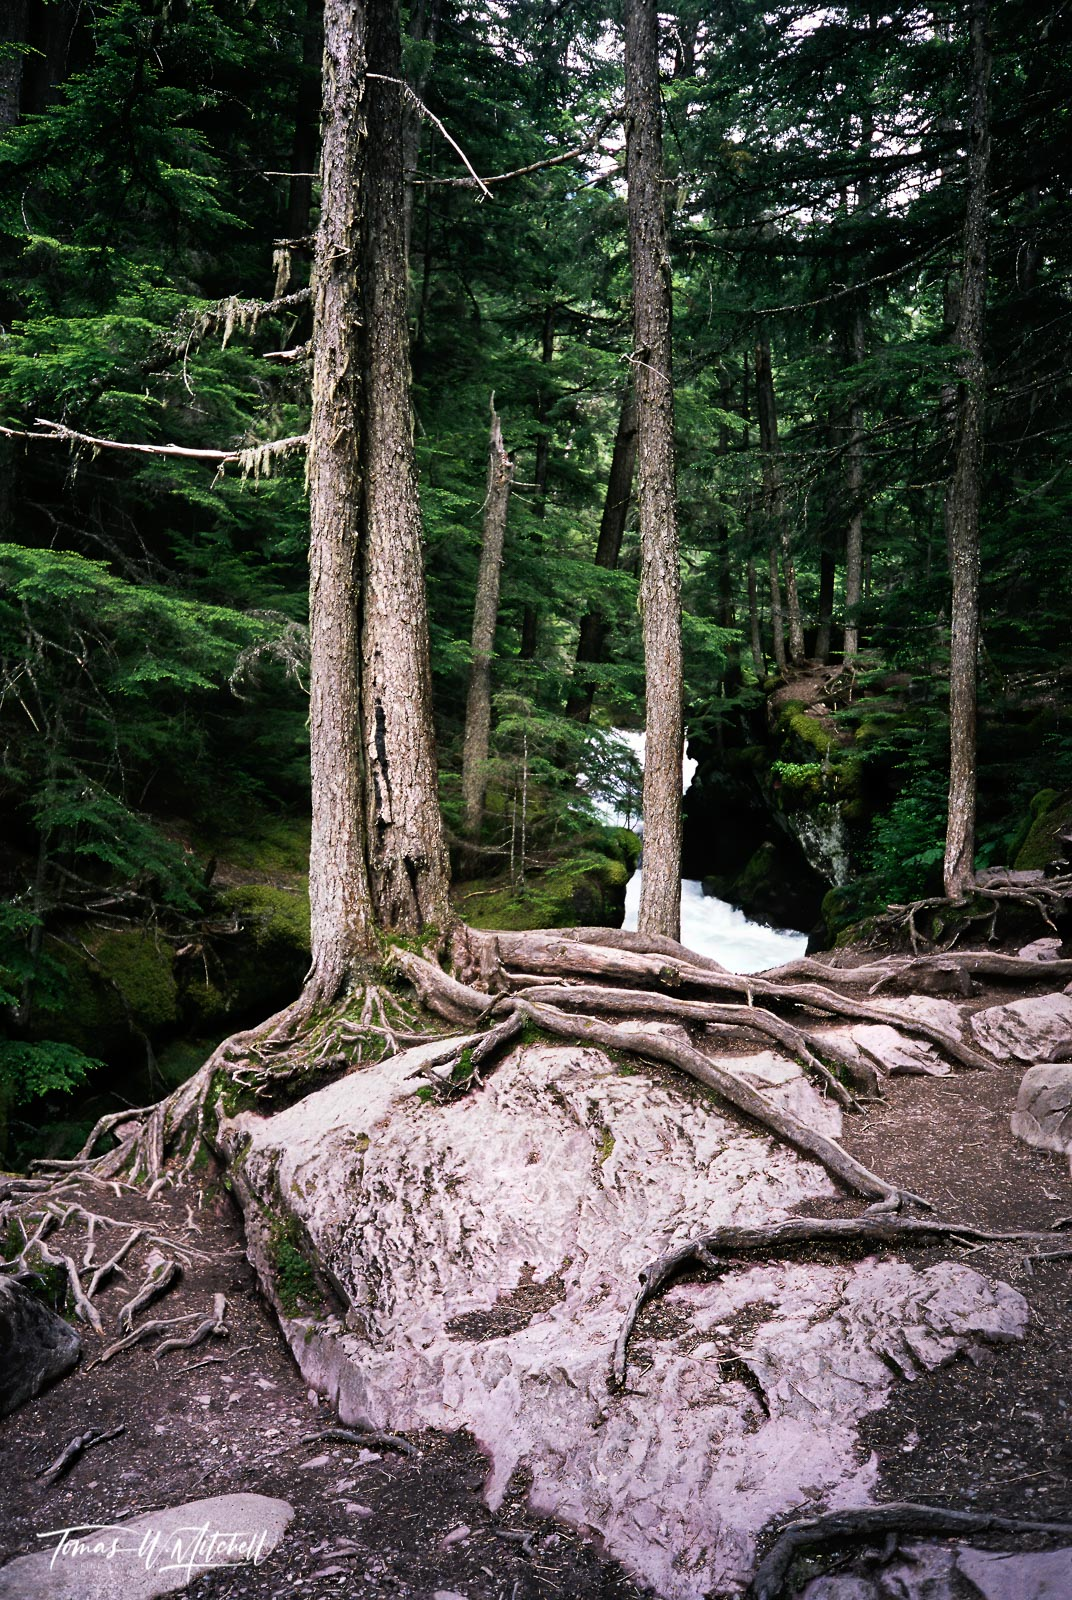 limited edition, fine art, prints, photograph, film, avalanche lake, glacier national park, montana,  j.r.r tolkien, ent, forest, entwood, The Lord of the Rings, roots, rocks, forest, trees, moss, photo